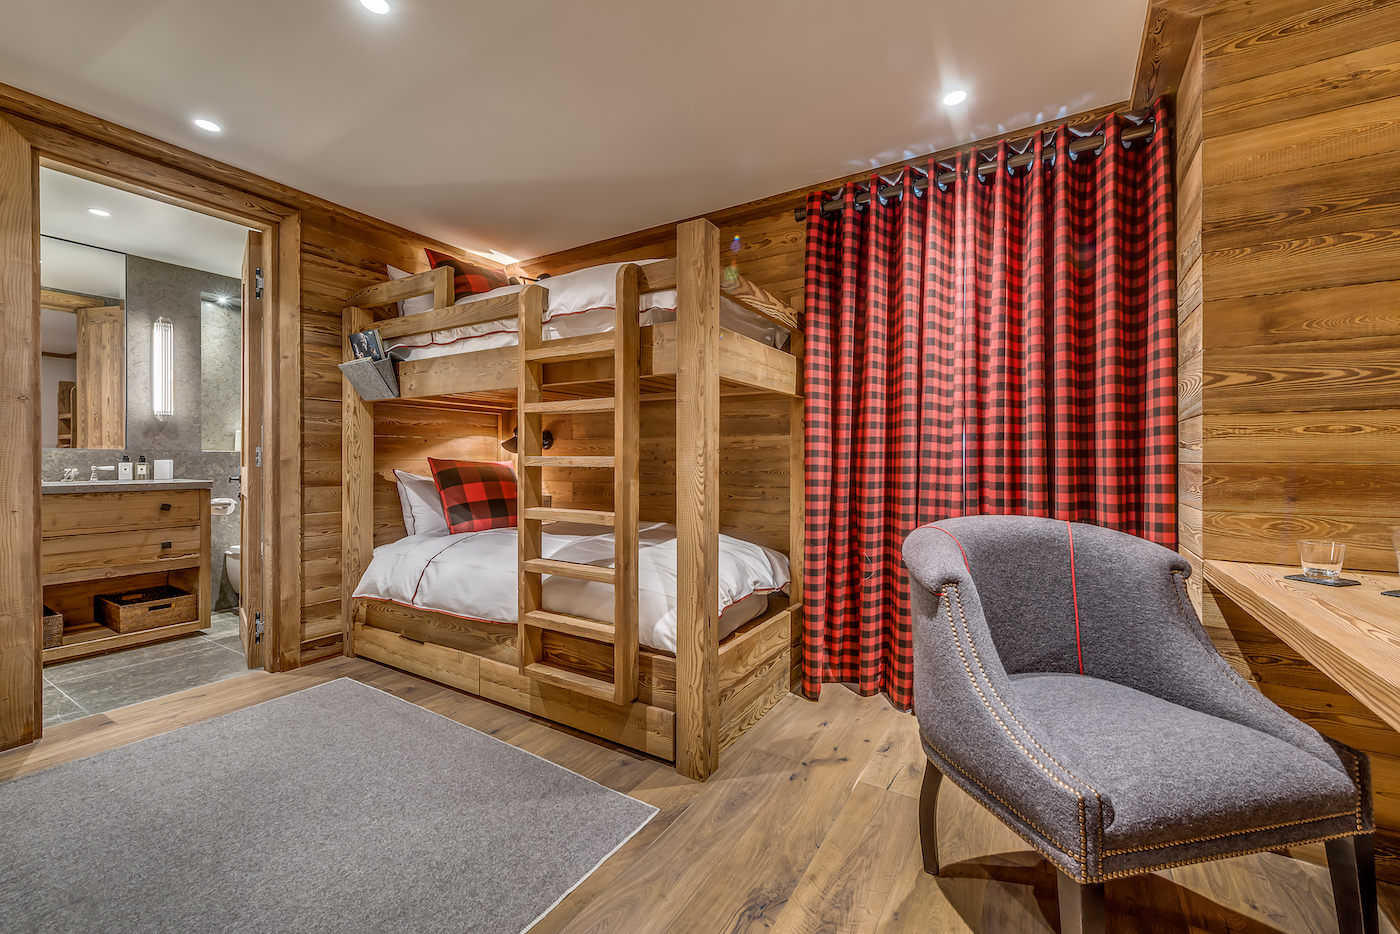 petit-chamois-bedroom-5a